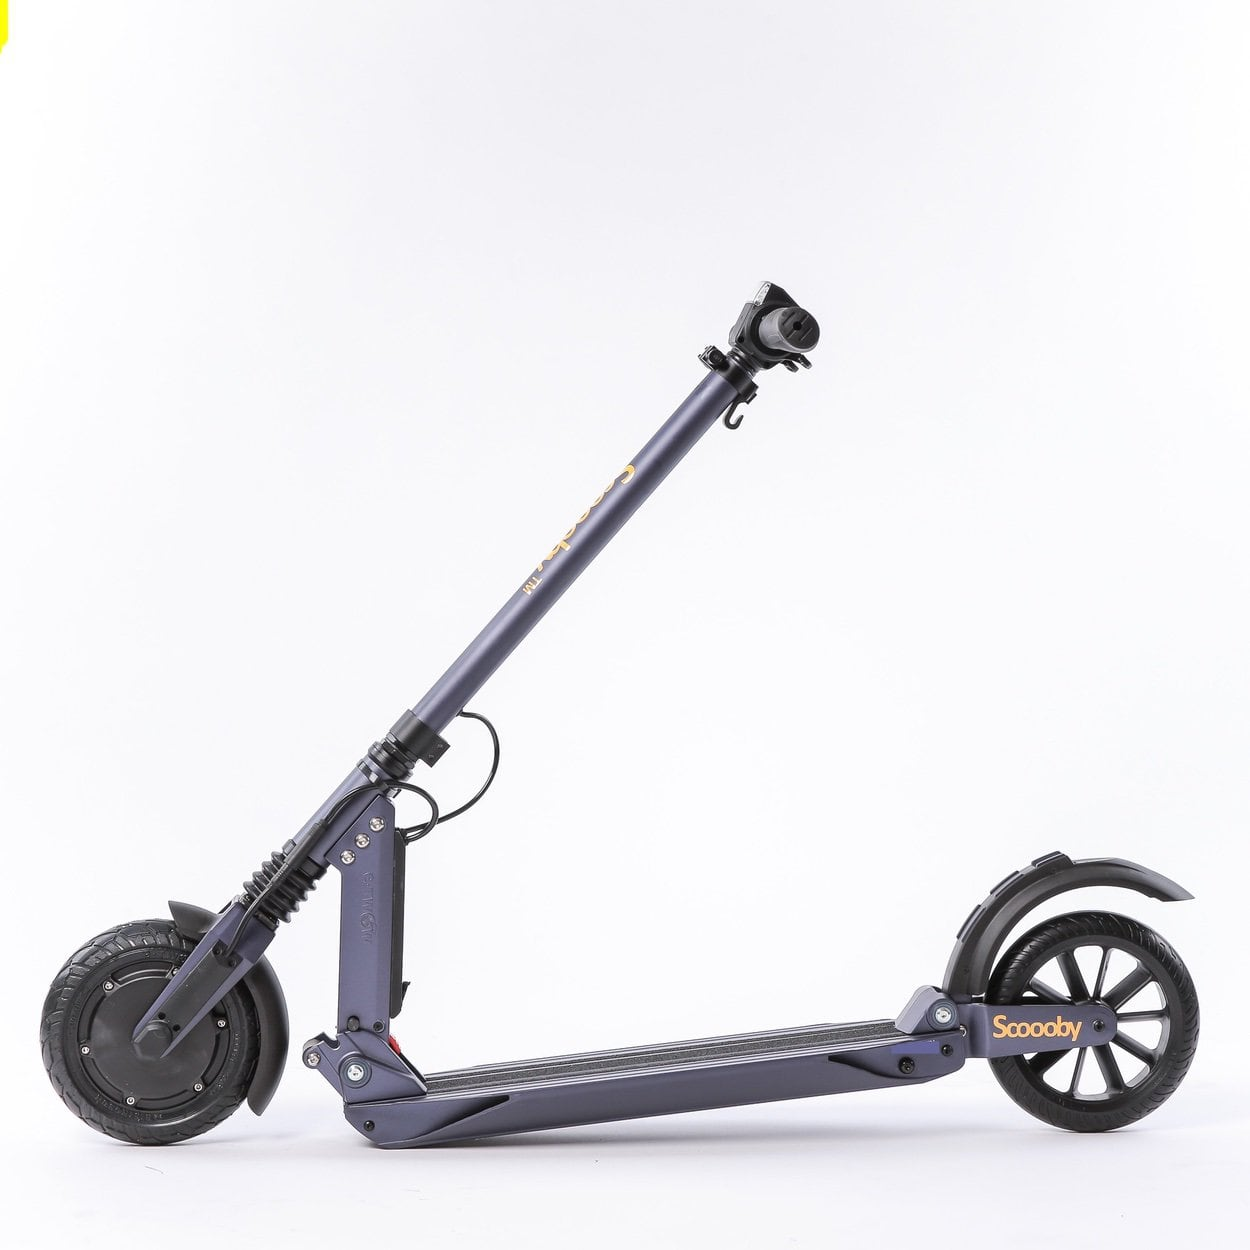 Scoooby Electric Scooter Lite Sky Metalic Blue